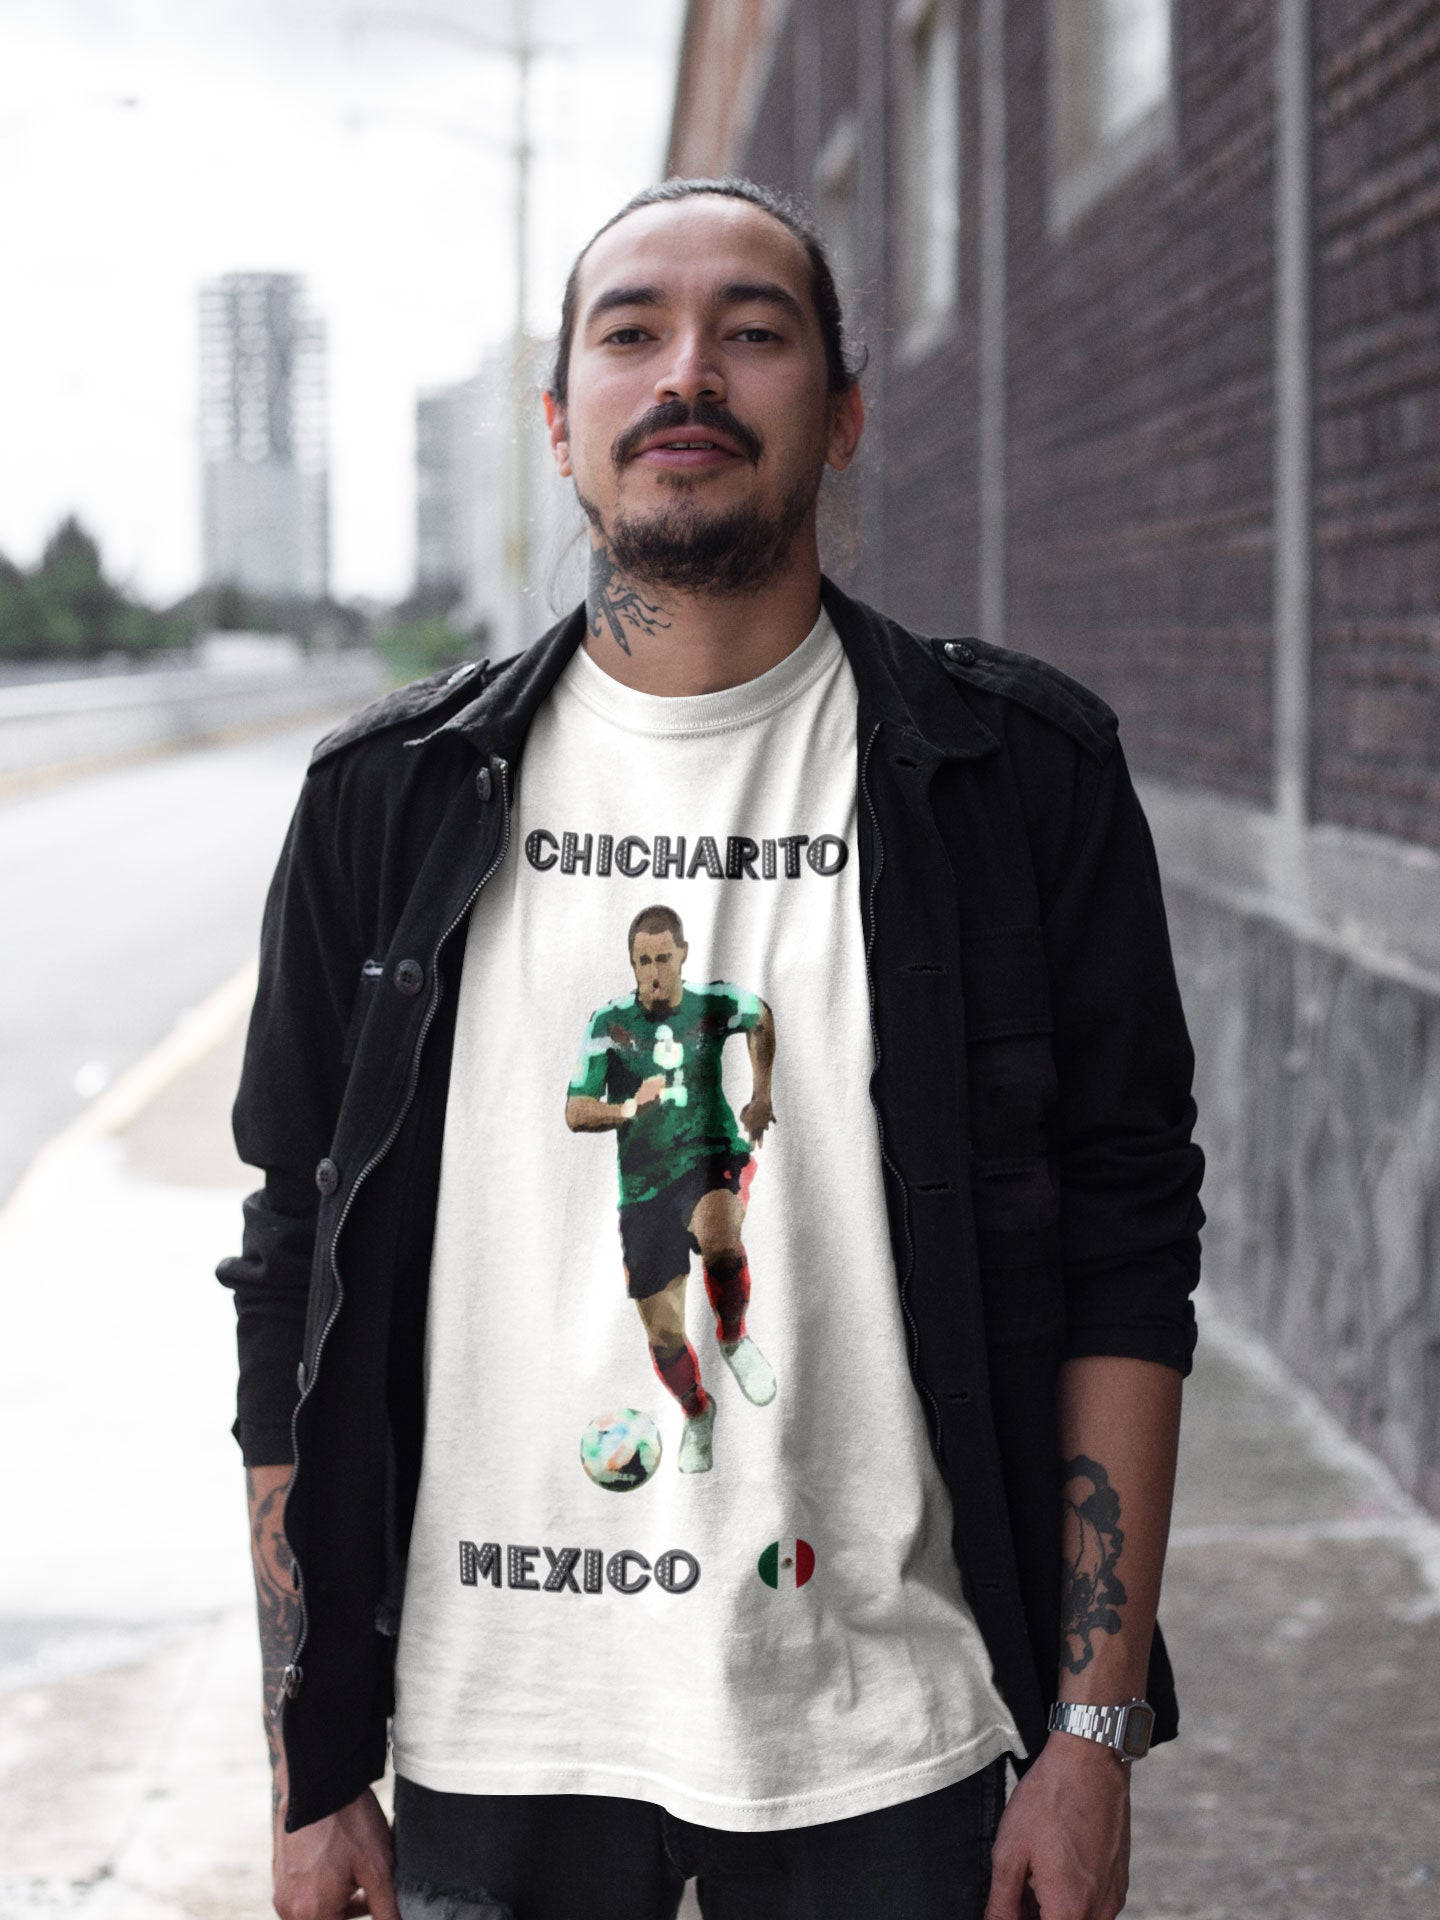 Man wearing a mexico world cup shirt featuring Javier Chicharito Hernandez in white